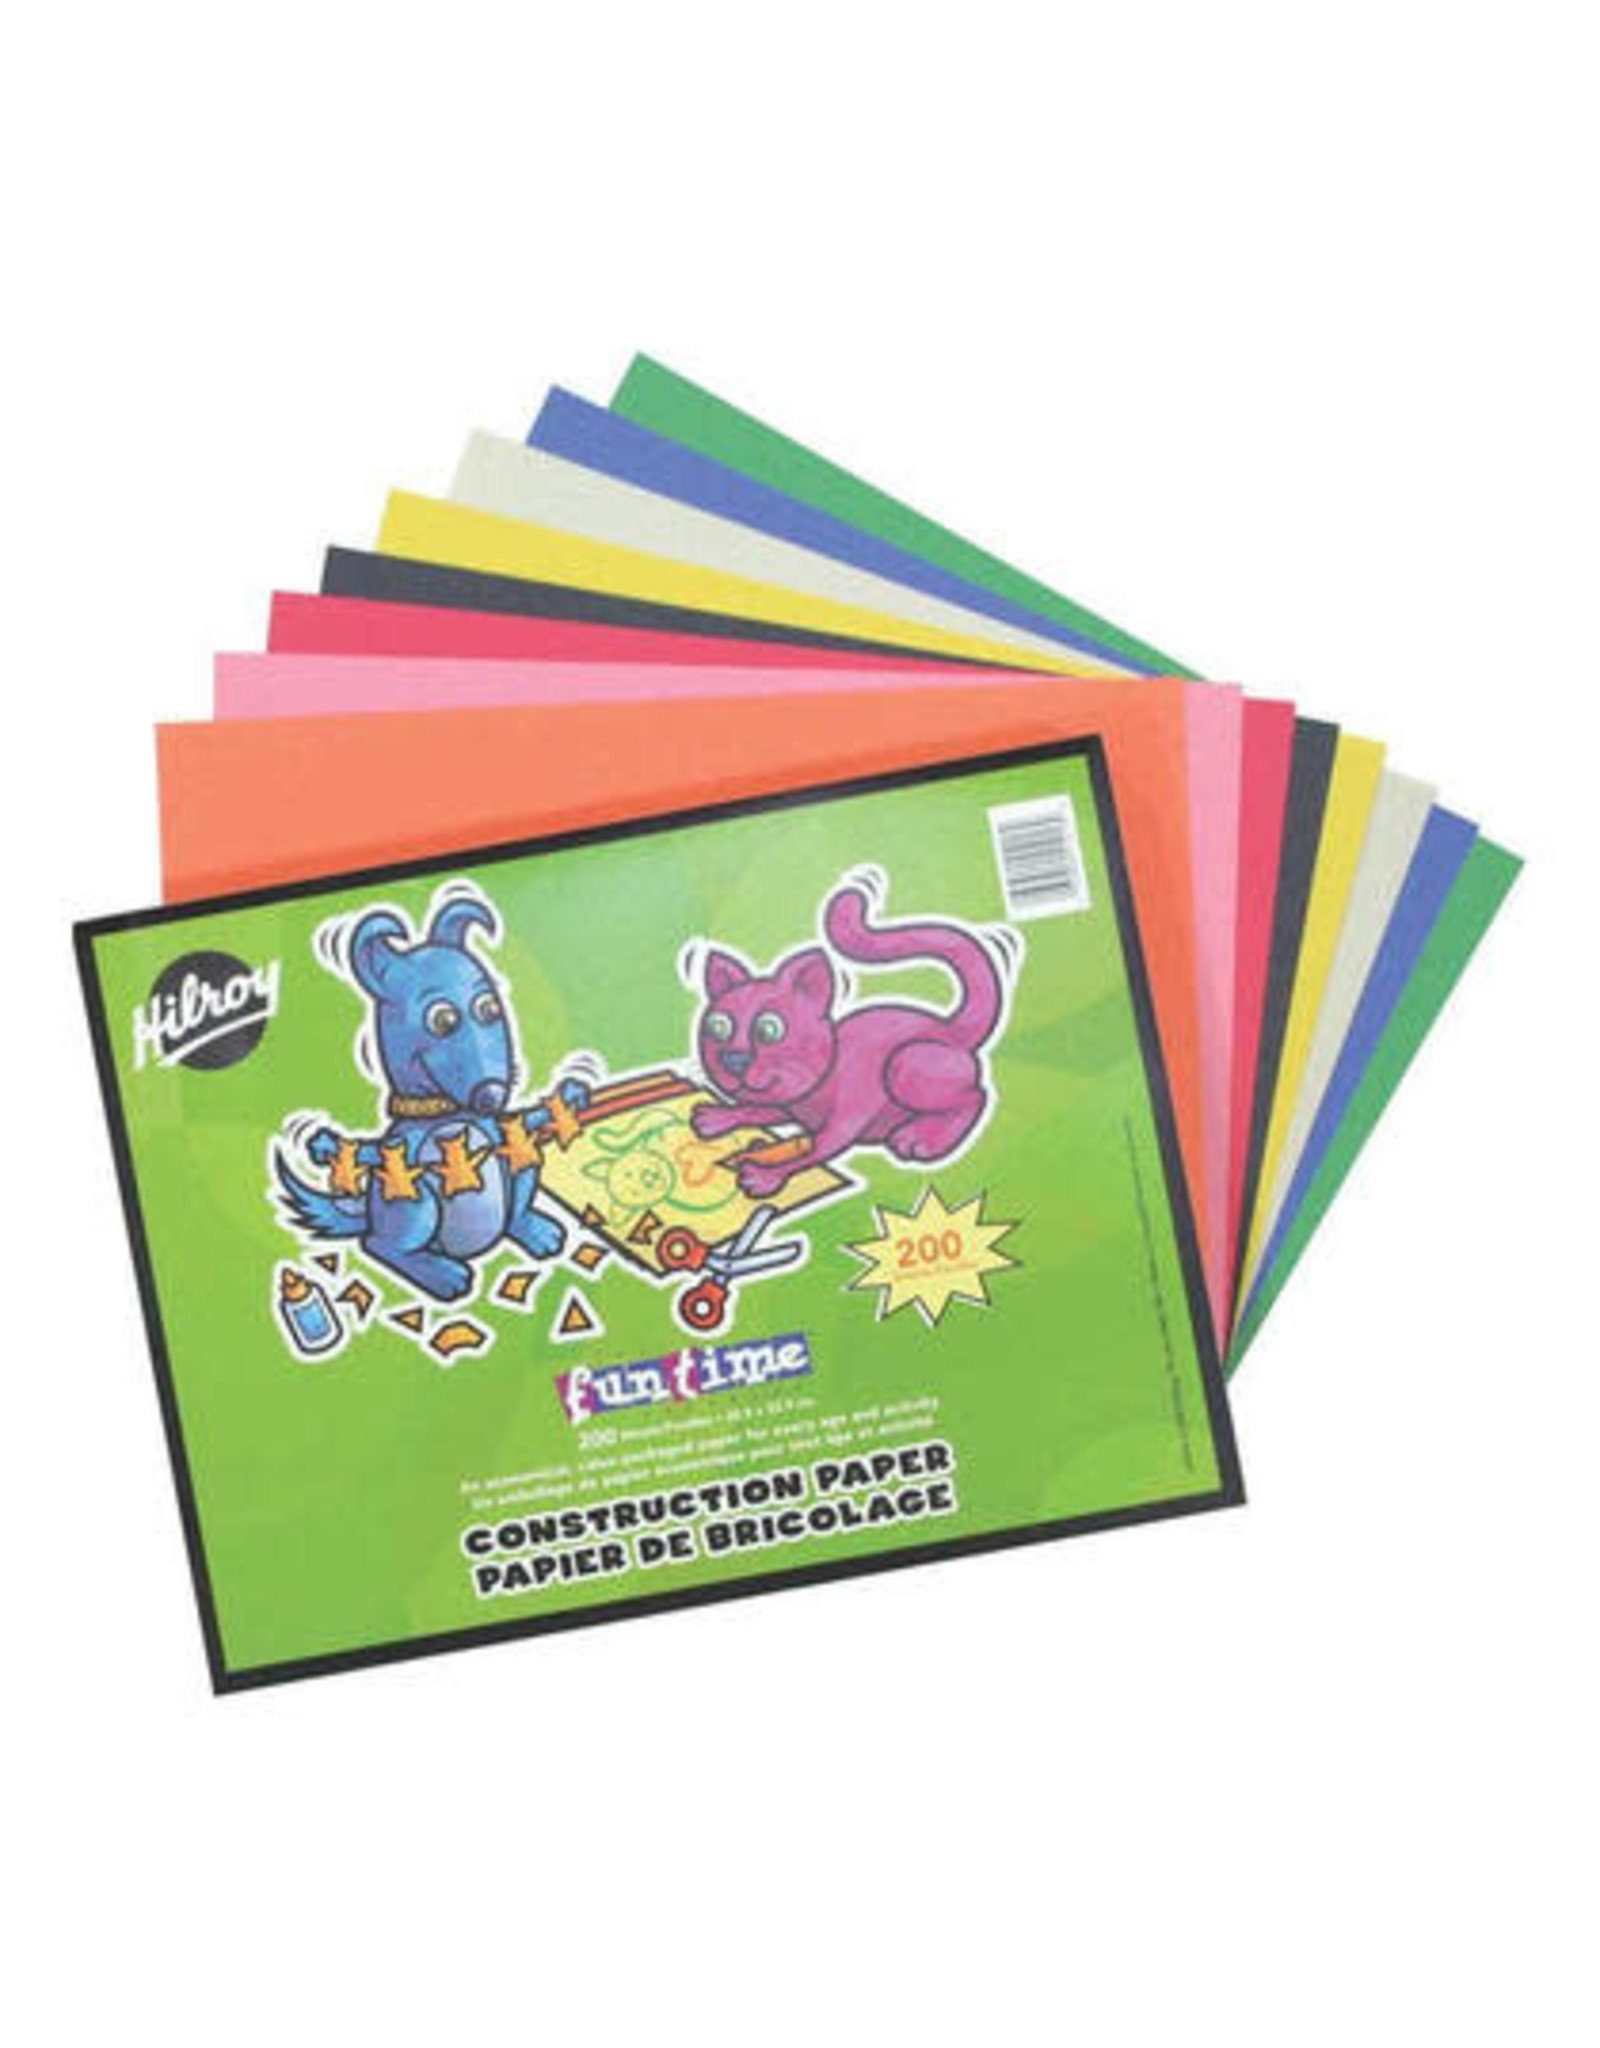 Hilroy CONSTRUCTION PAPER PAD 12X9 FUNTIME 200 SHEET